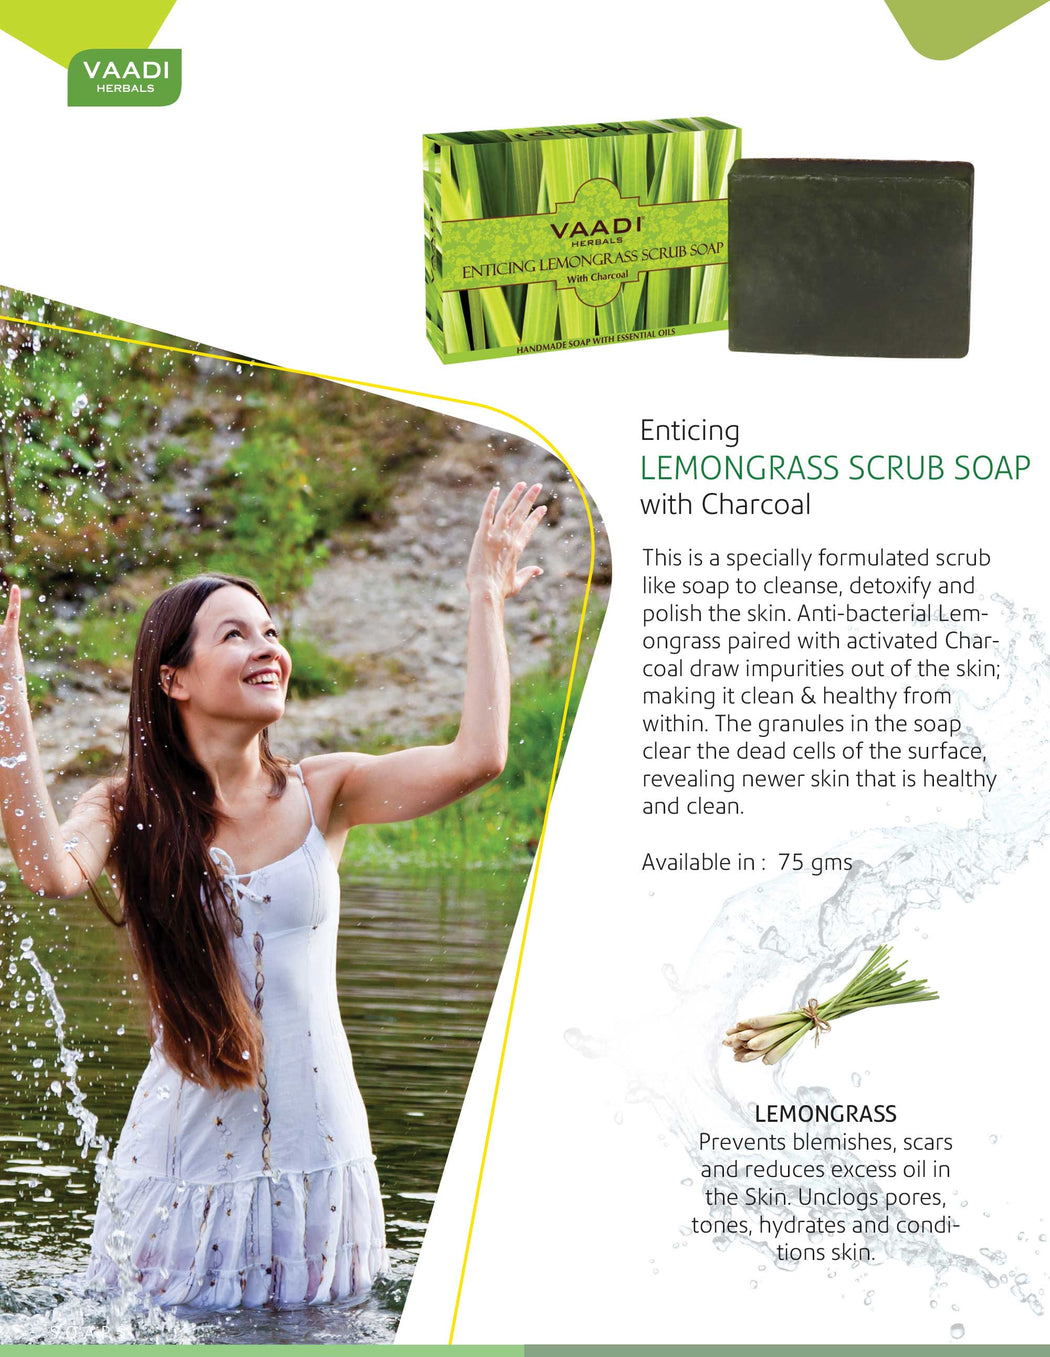 Enticing Organic Lemongrass Soap with Charcoal - Exfoliates & Polishes Skin - Makes Skin Smooth (6 x 75 gms / 2.7 oz)